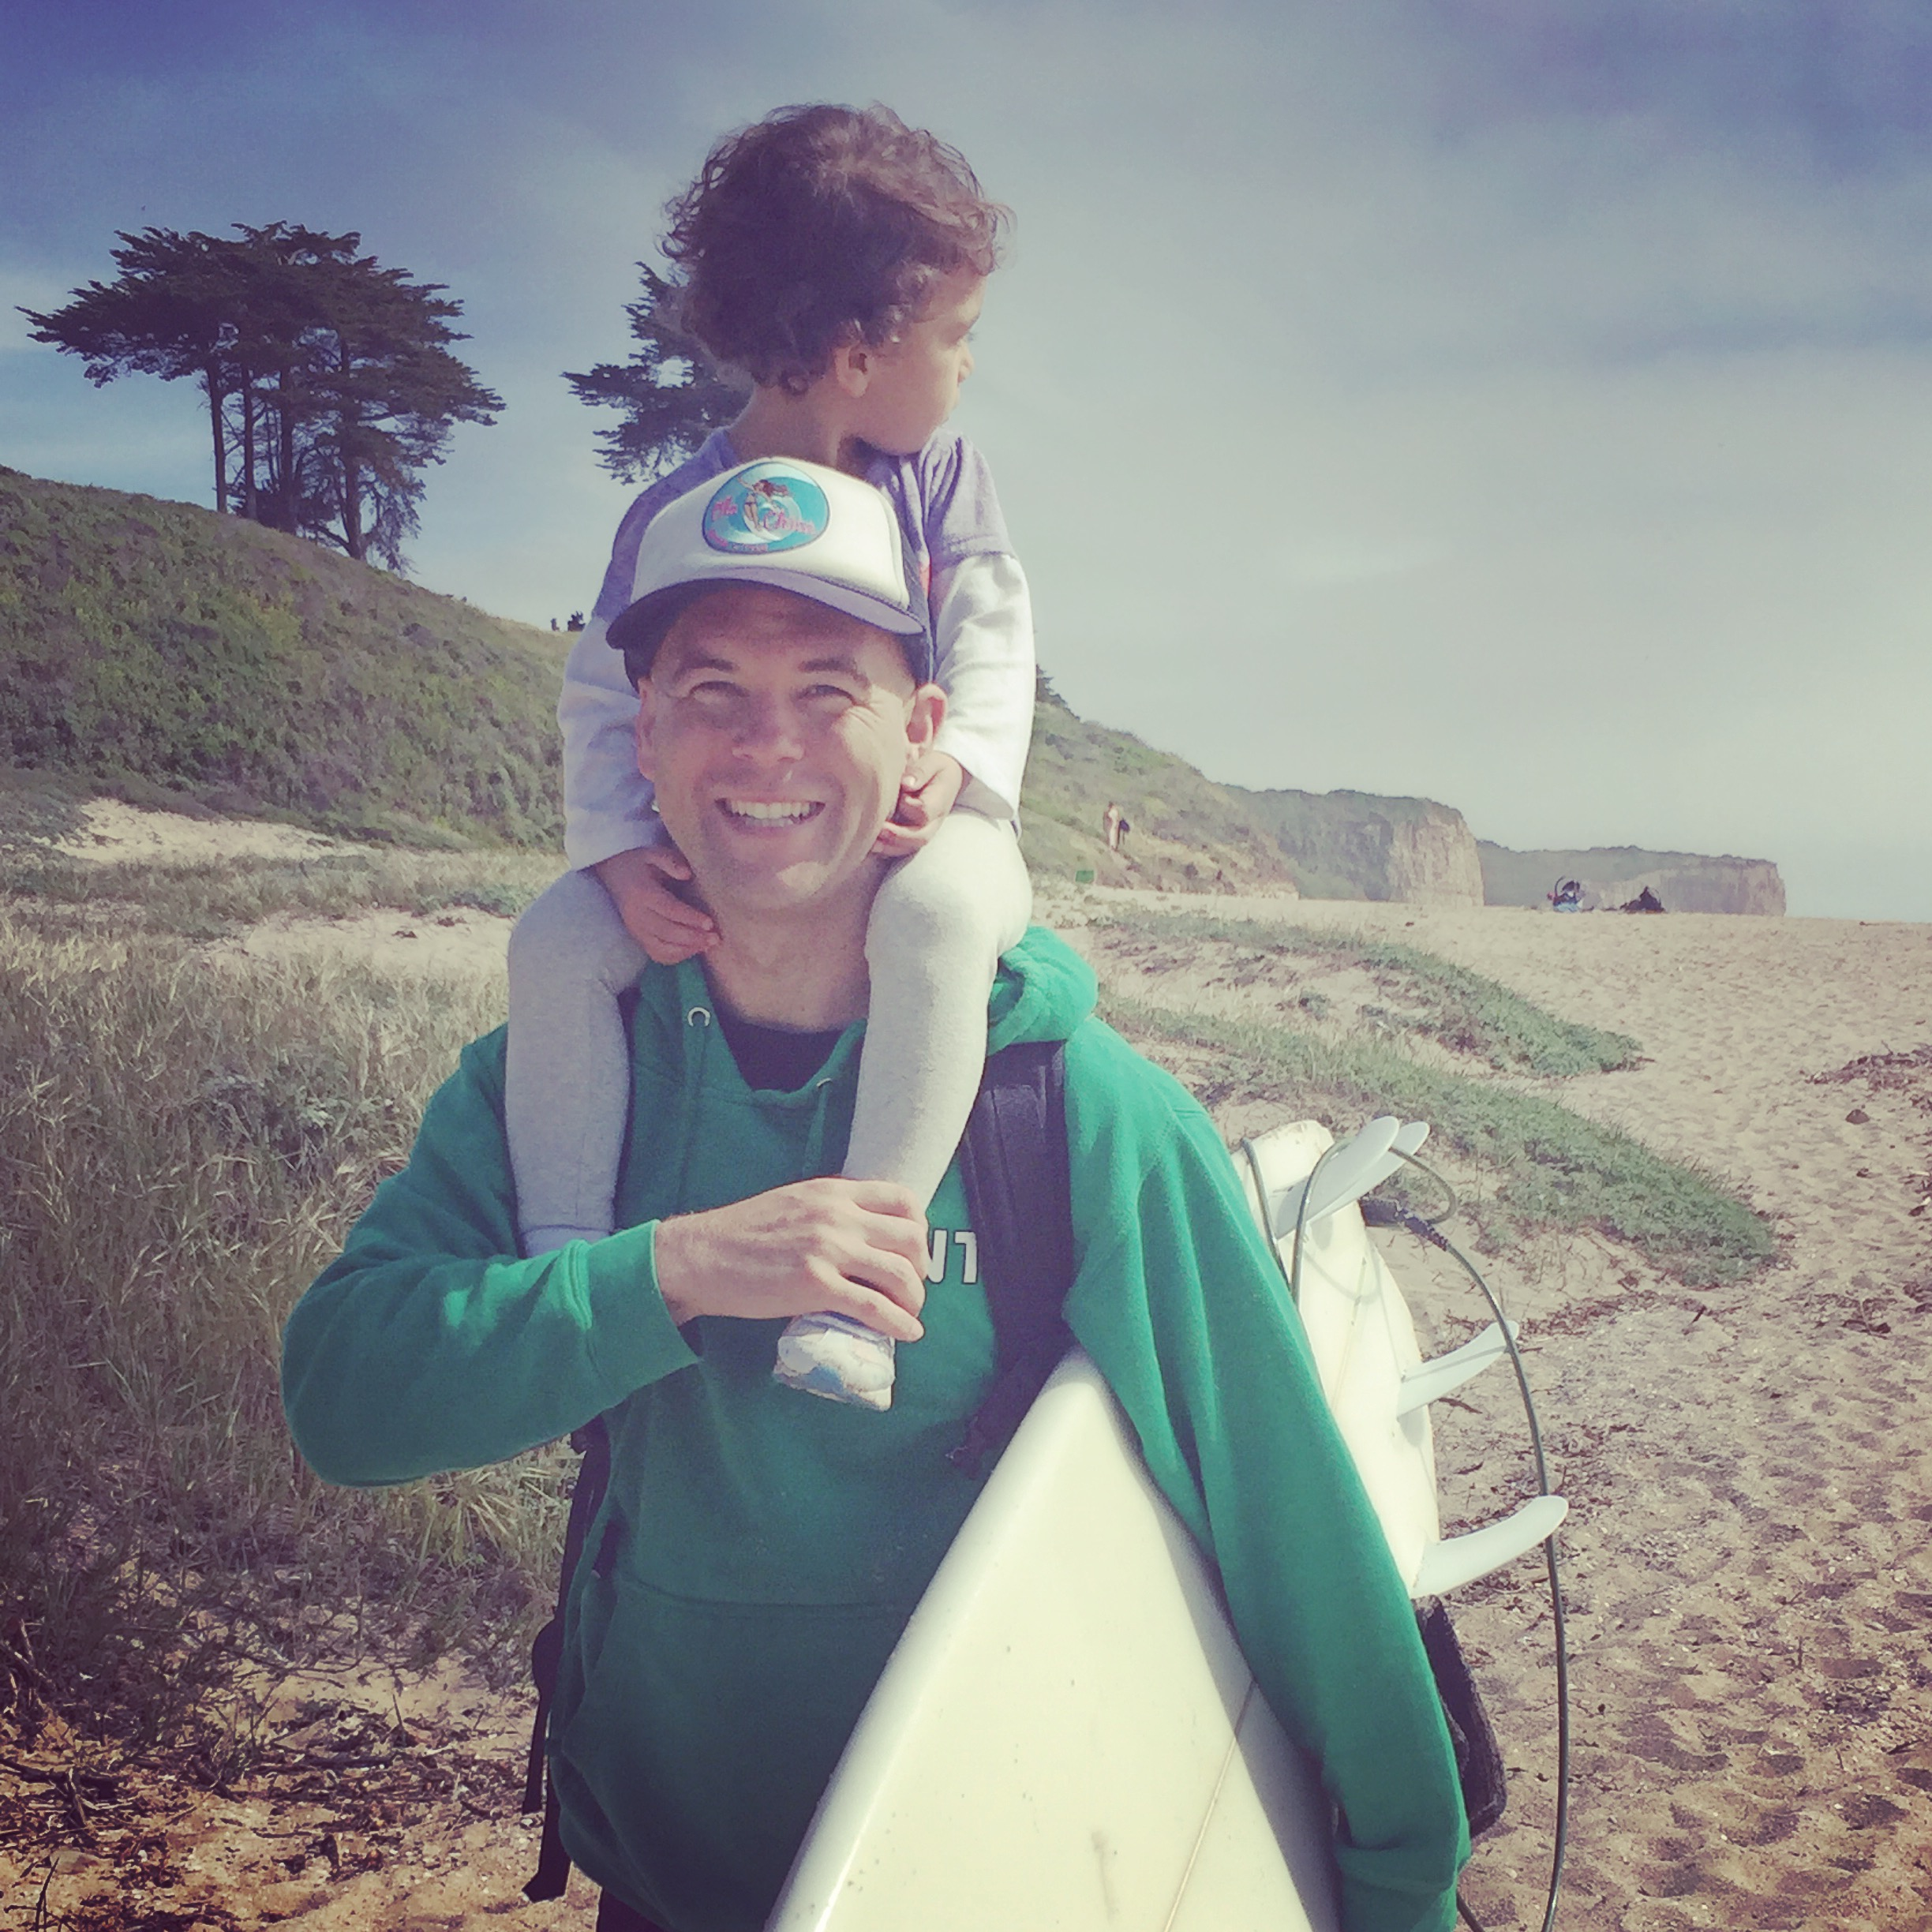 Surf was so good that day Laila couldn't take her eyes off it. ;)